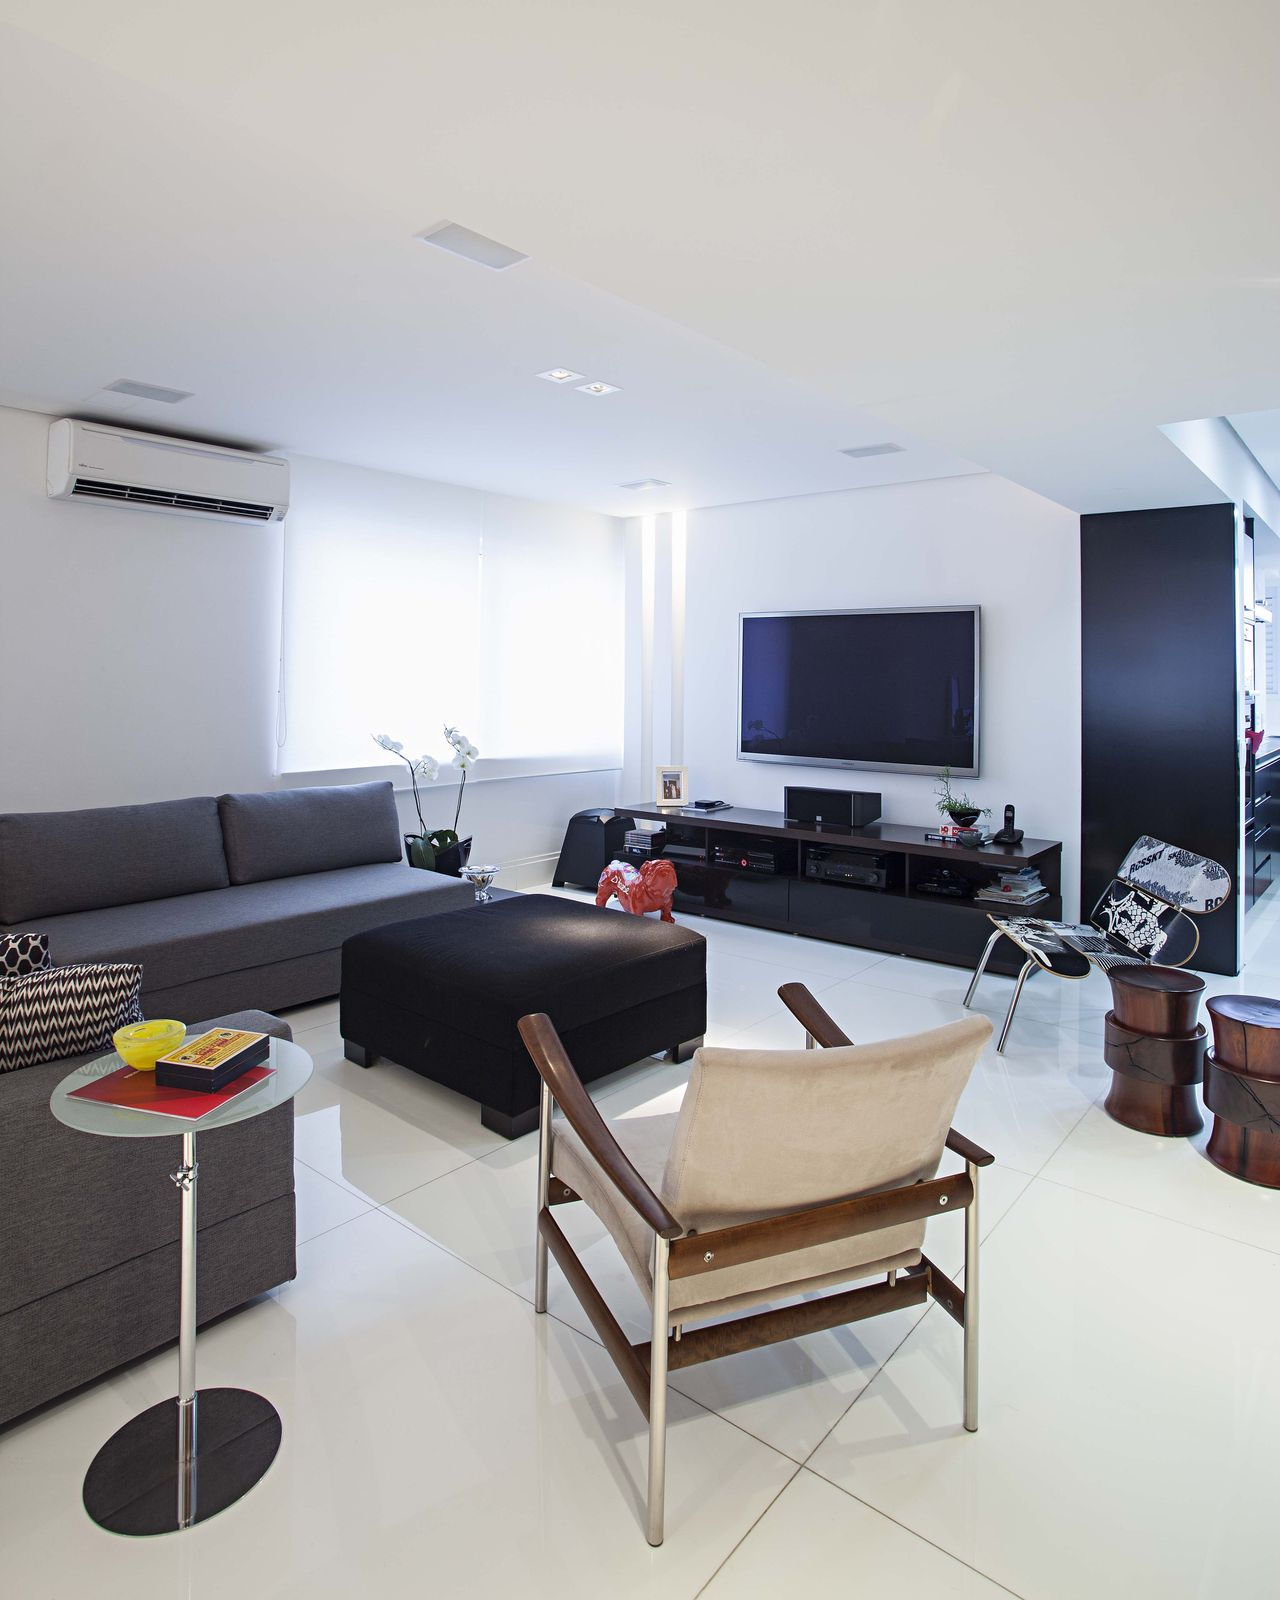 Image of: Sala De Estar Com Sofa Cinza E Rack Preto Korman Arquitetos 161725 Viva Decora